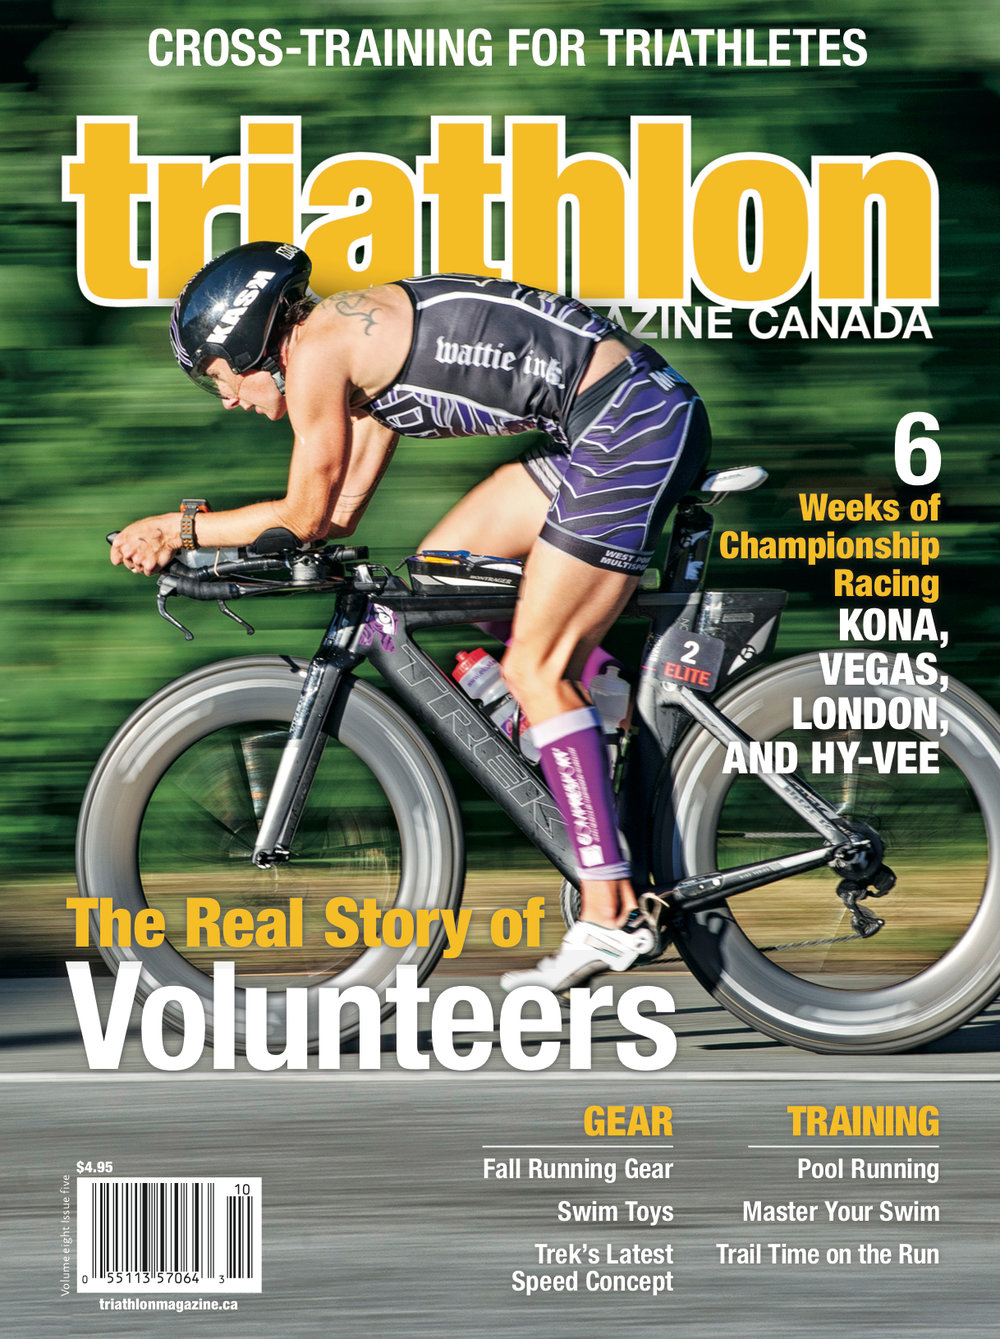 2013 TriMagCan cover.jpg